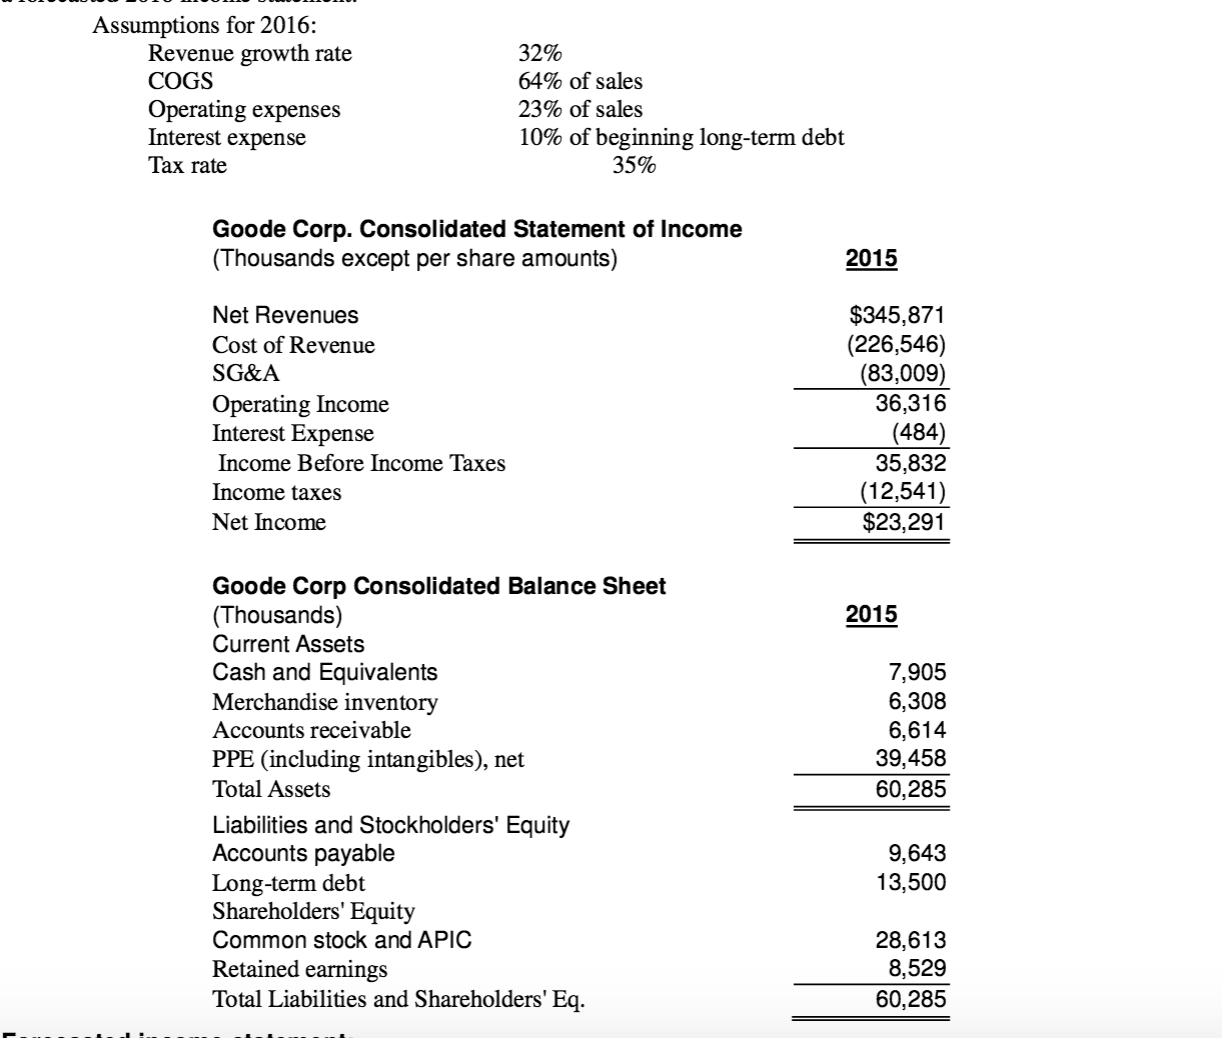 balance sheet and income statement The income statement and balance sheet of a company are linked through the net income for a period and the subsequent increase, or decrease, in equity that results the income that an entity earns over a period of time is transcribed to the equity portion of the balance sheet.